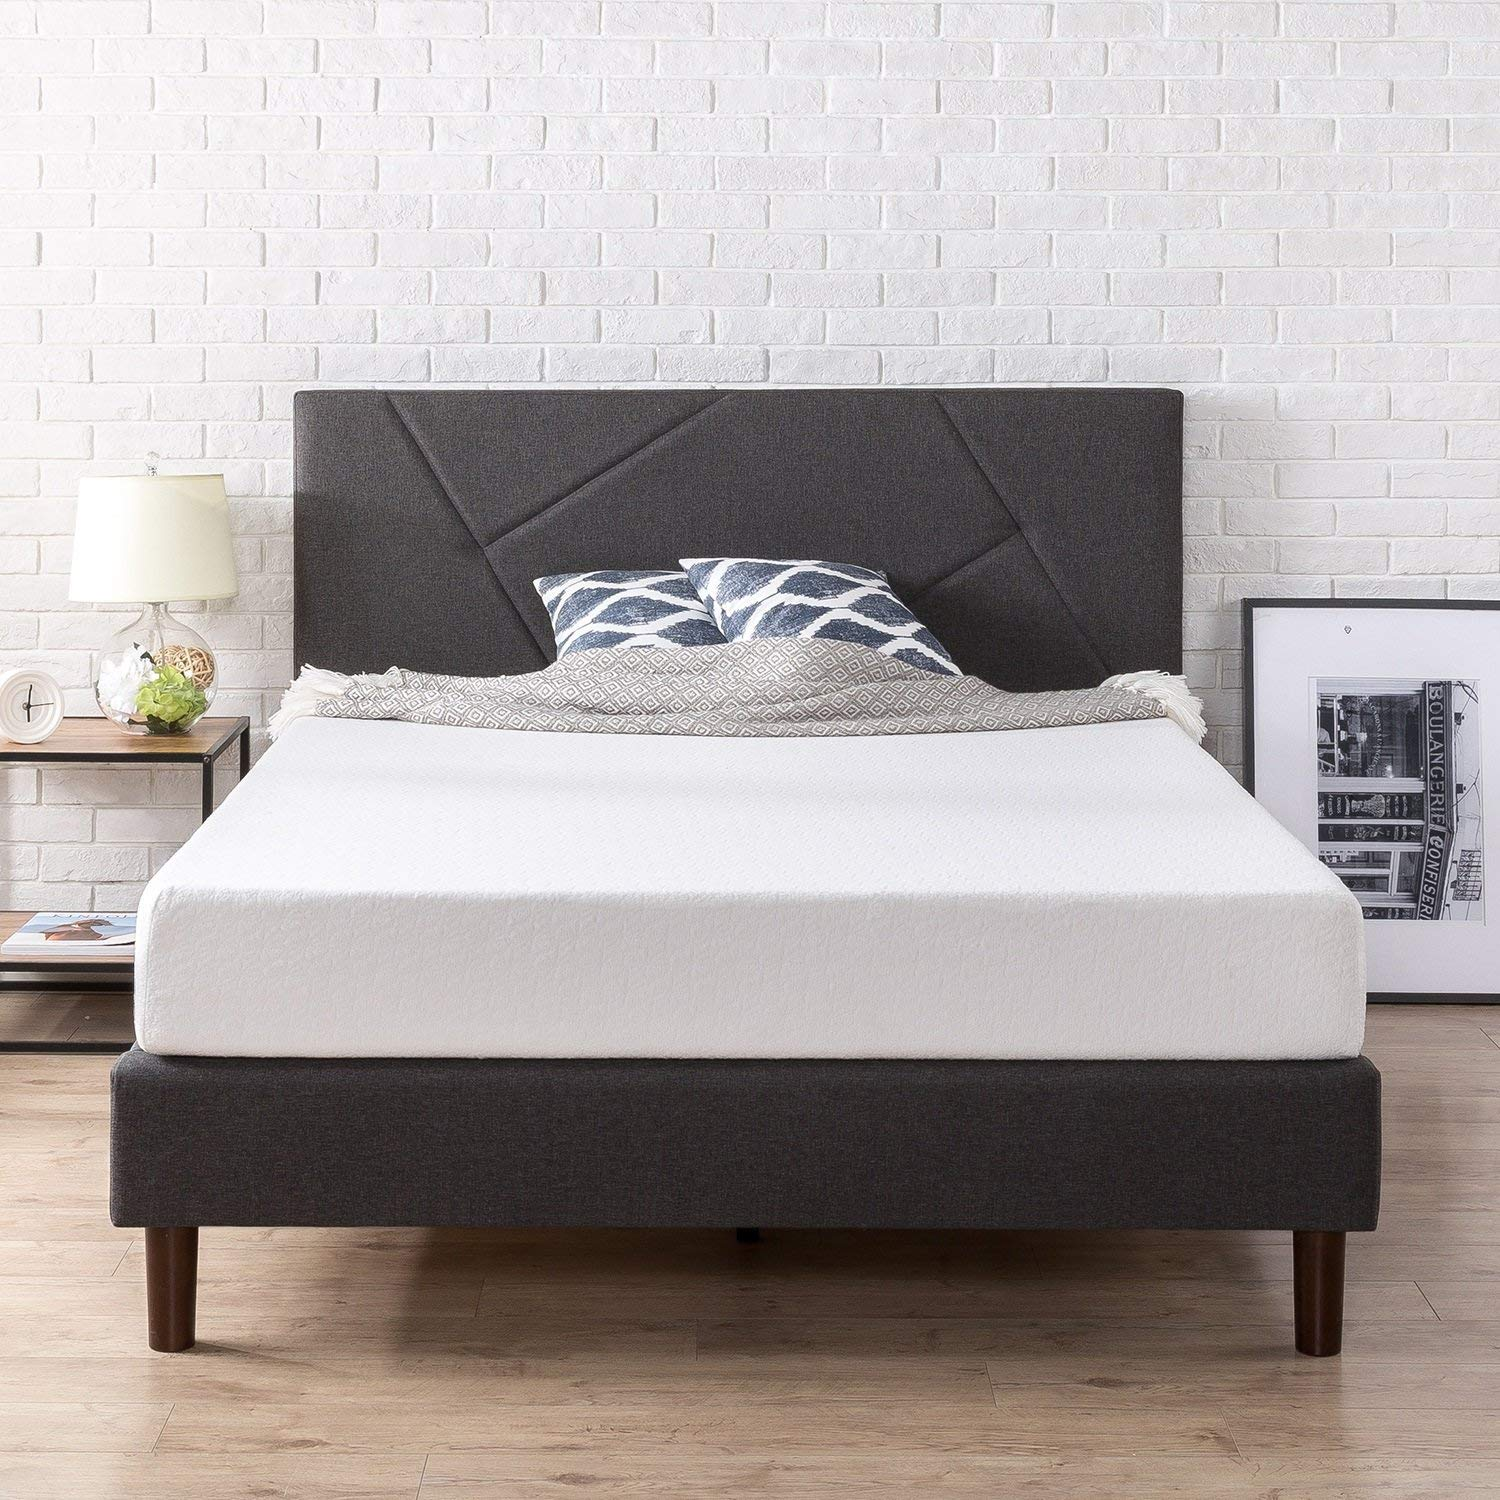 Zinus Upholstered Geometric Paneled Platform Bed with Wood Slat Support, Full Renewed